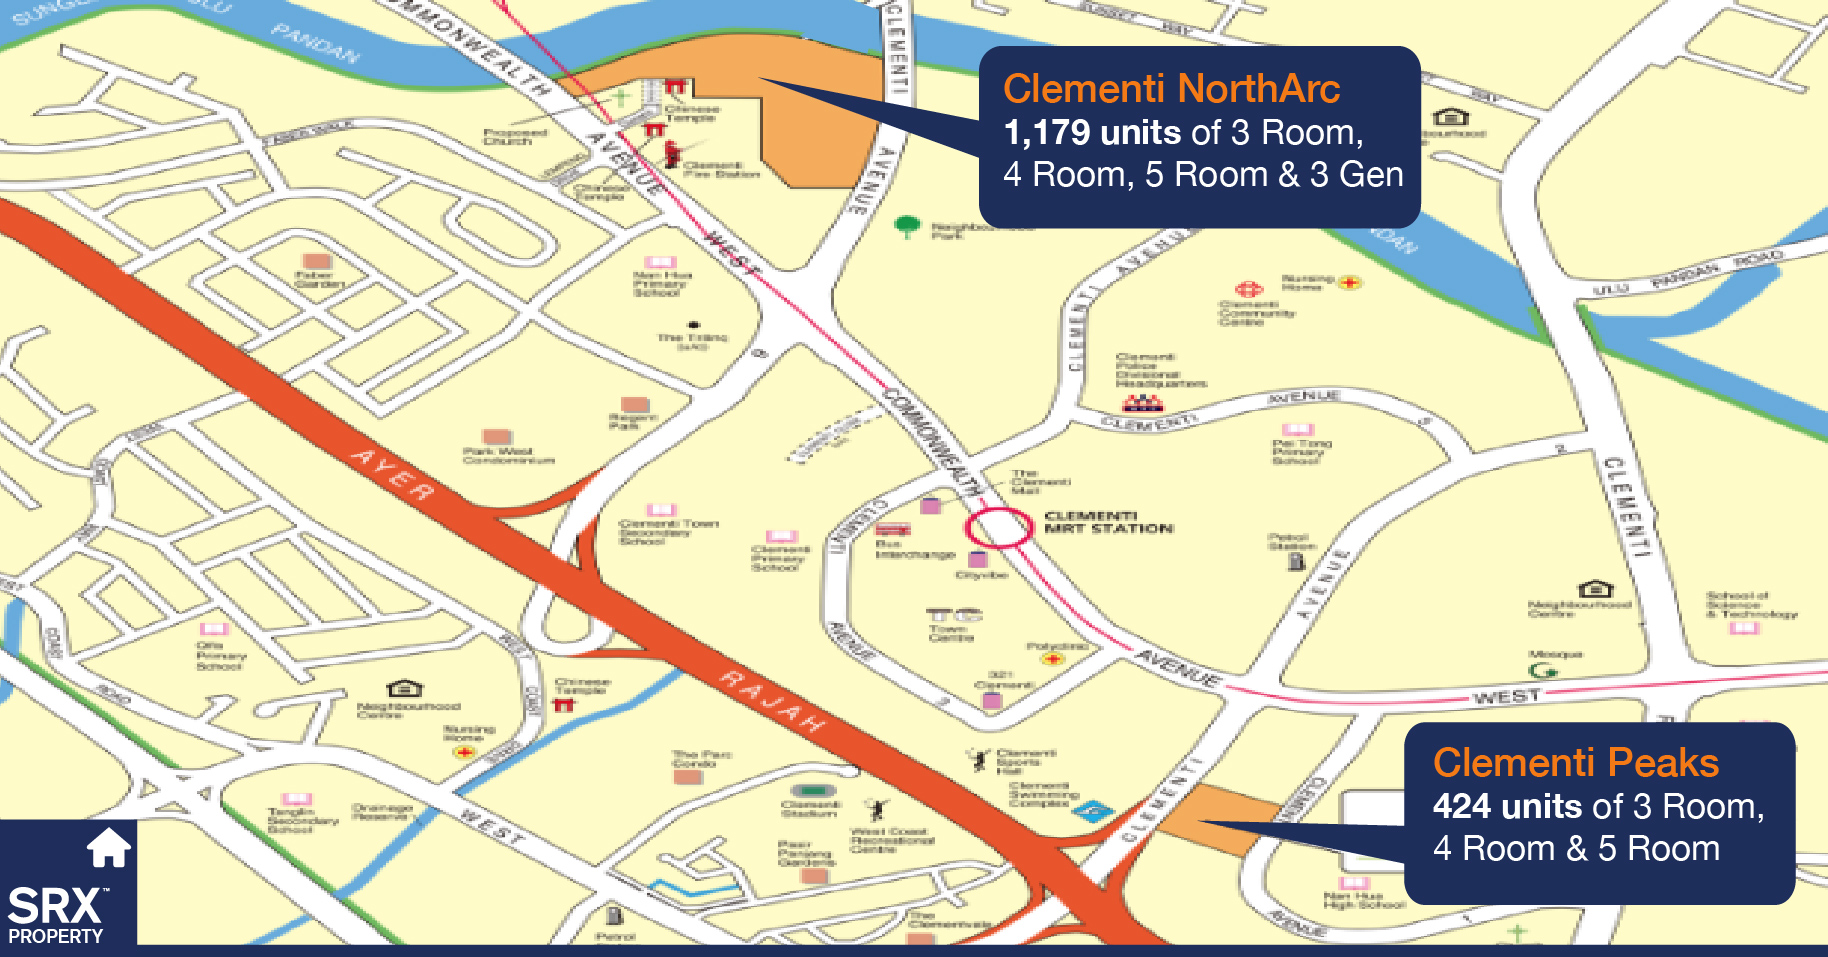 Cityvibe Clementi Northarc Peaks Bto Launch In February 2017